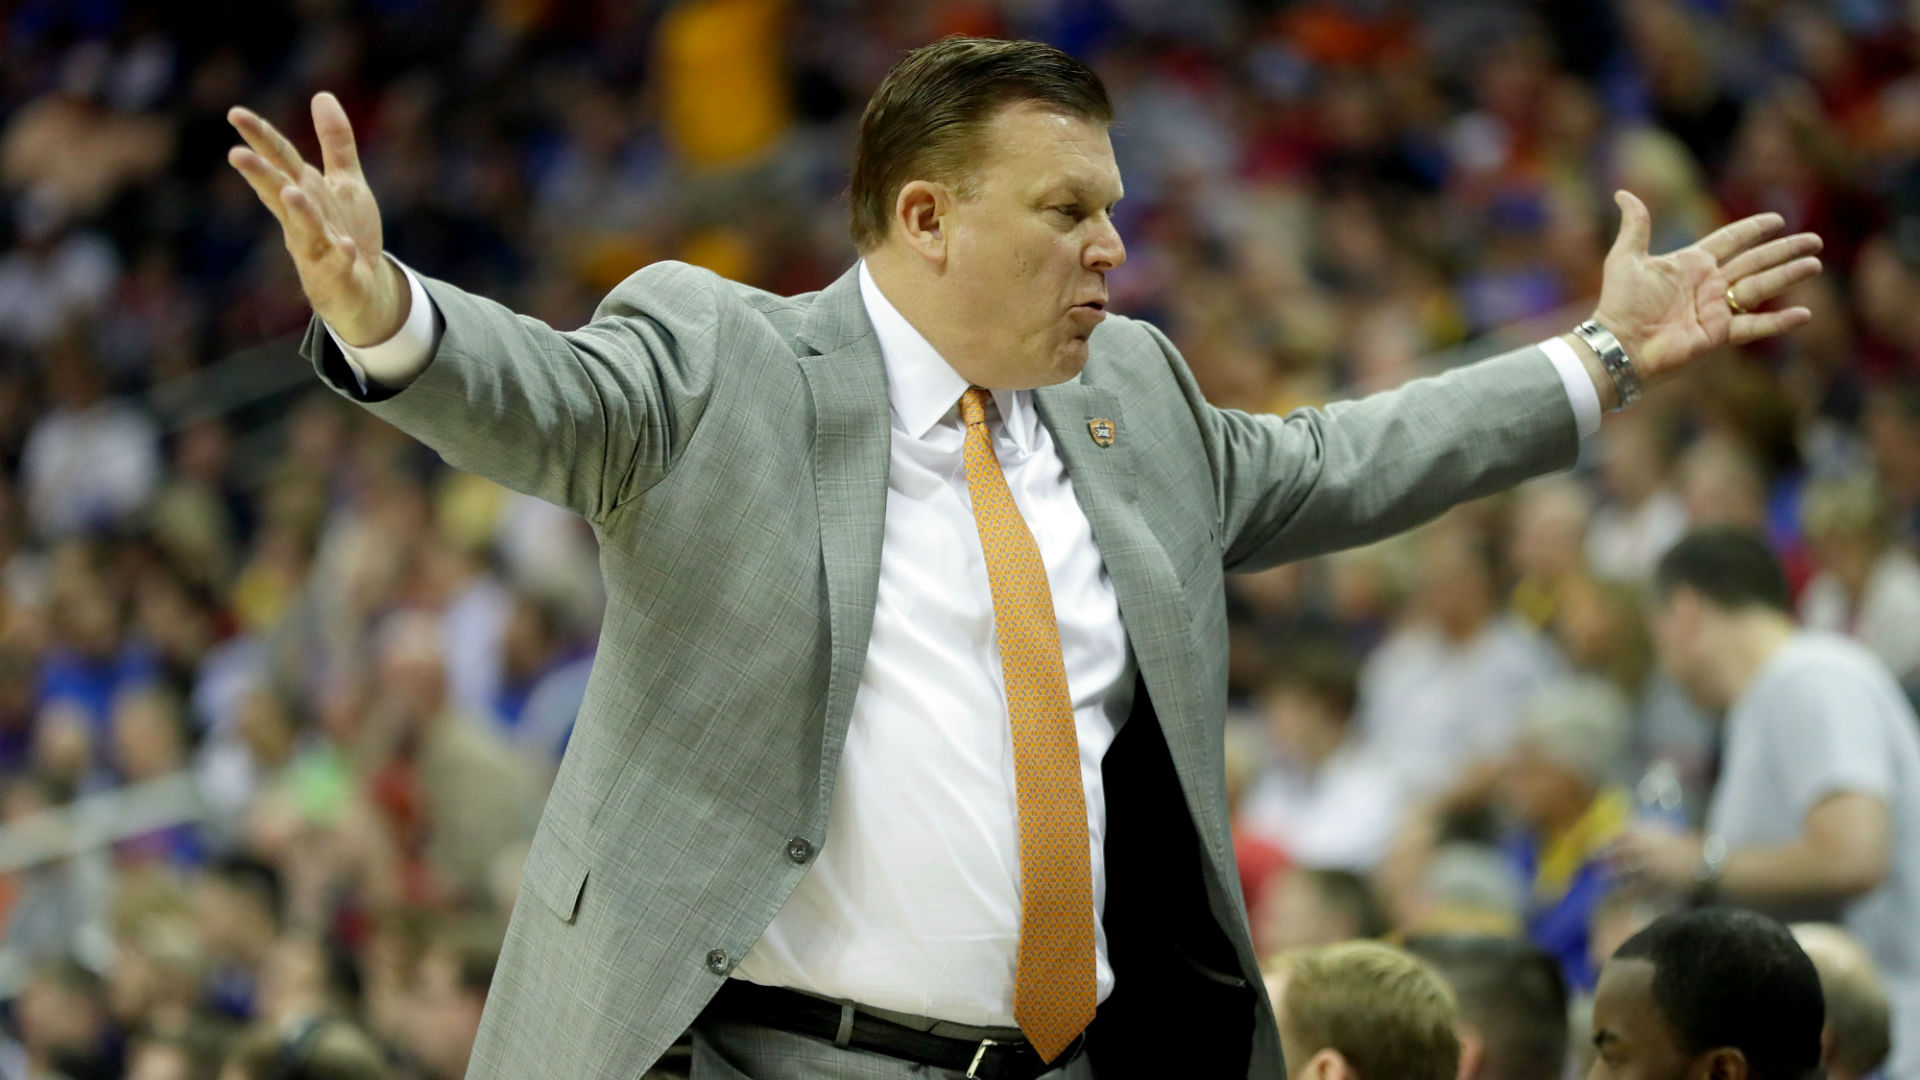 Illinois shocks the sport — and delights its fans — by hiring away OK State's Brad Underwood